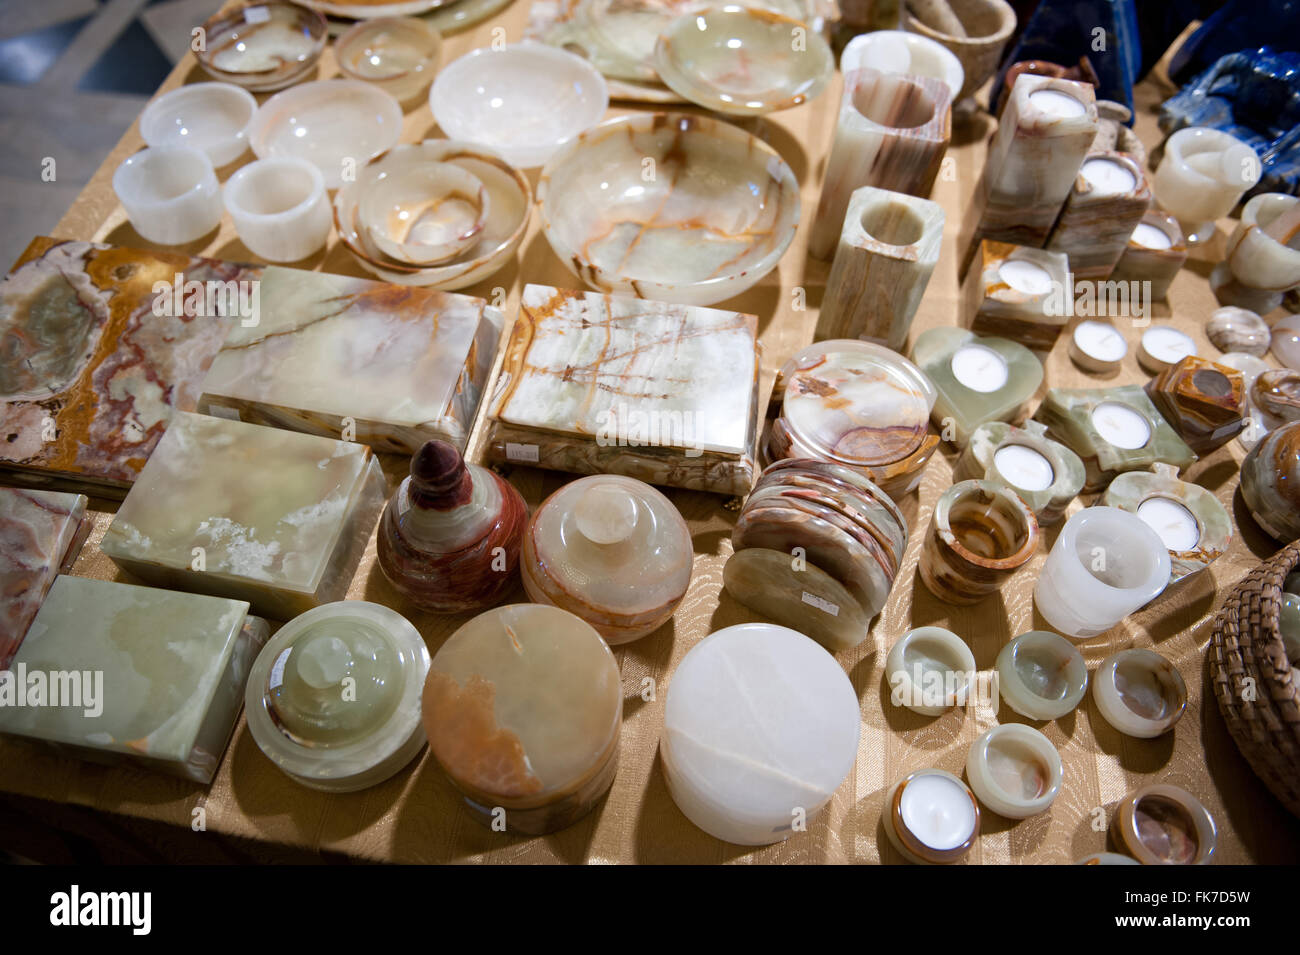 Crystal gemstone objects assortment at Warsaw Mineral Expo 2016, 5th March, VI edition event in the Palace PKiN, - Stock Image